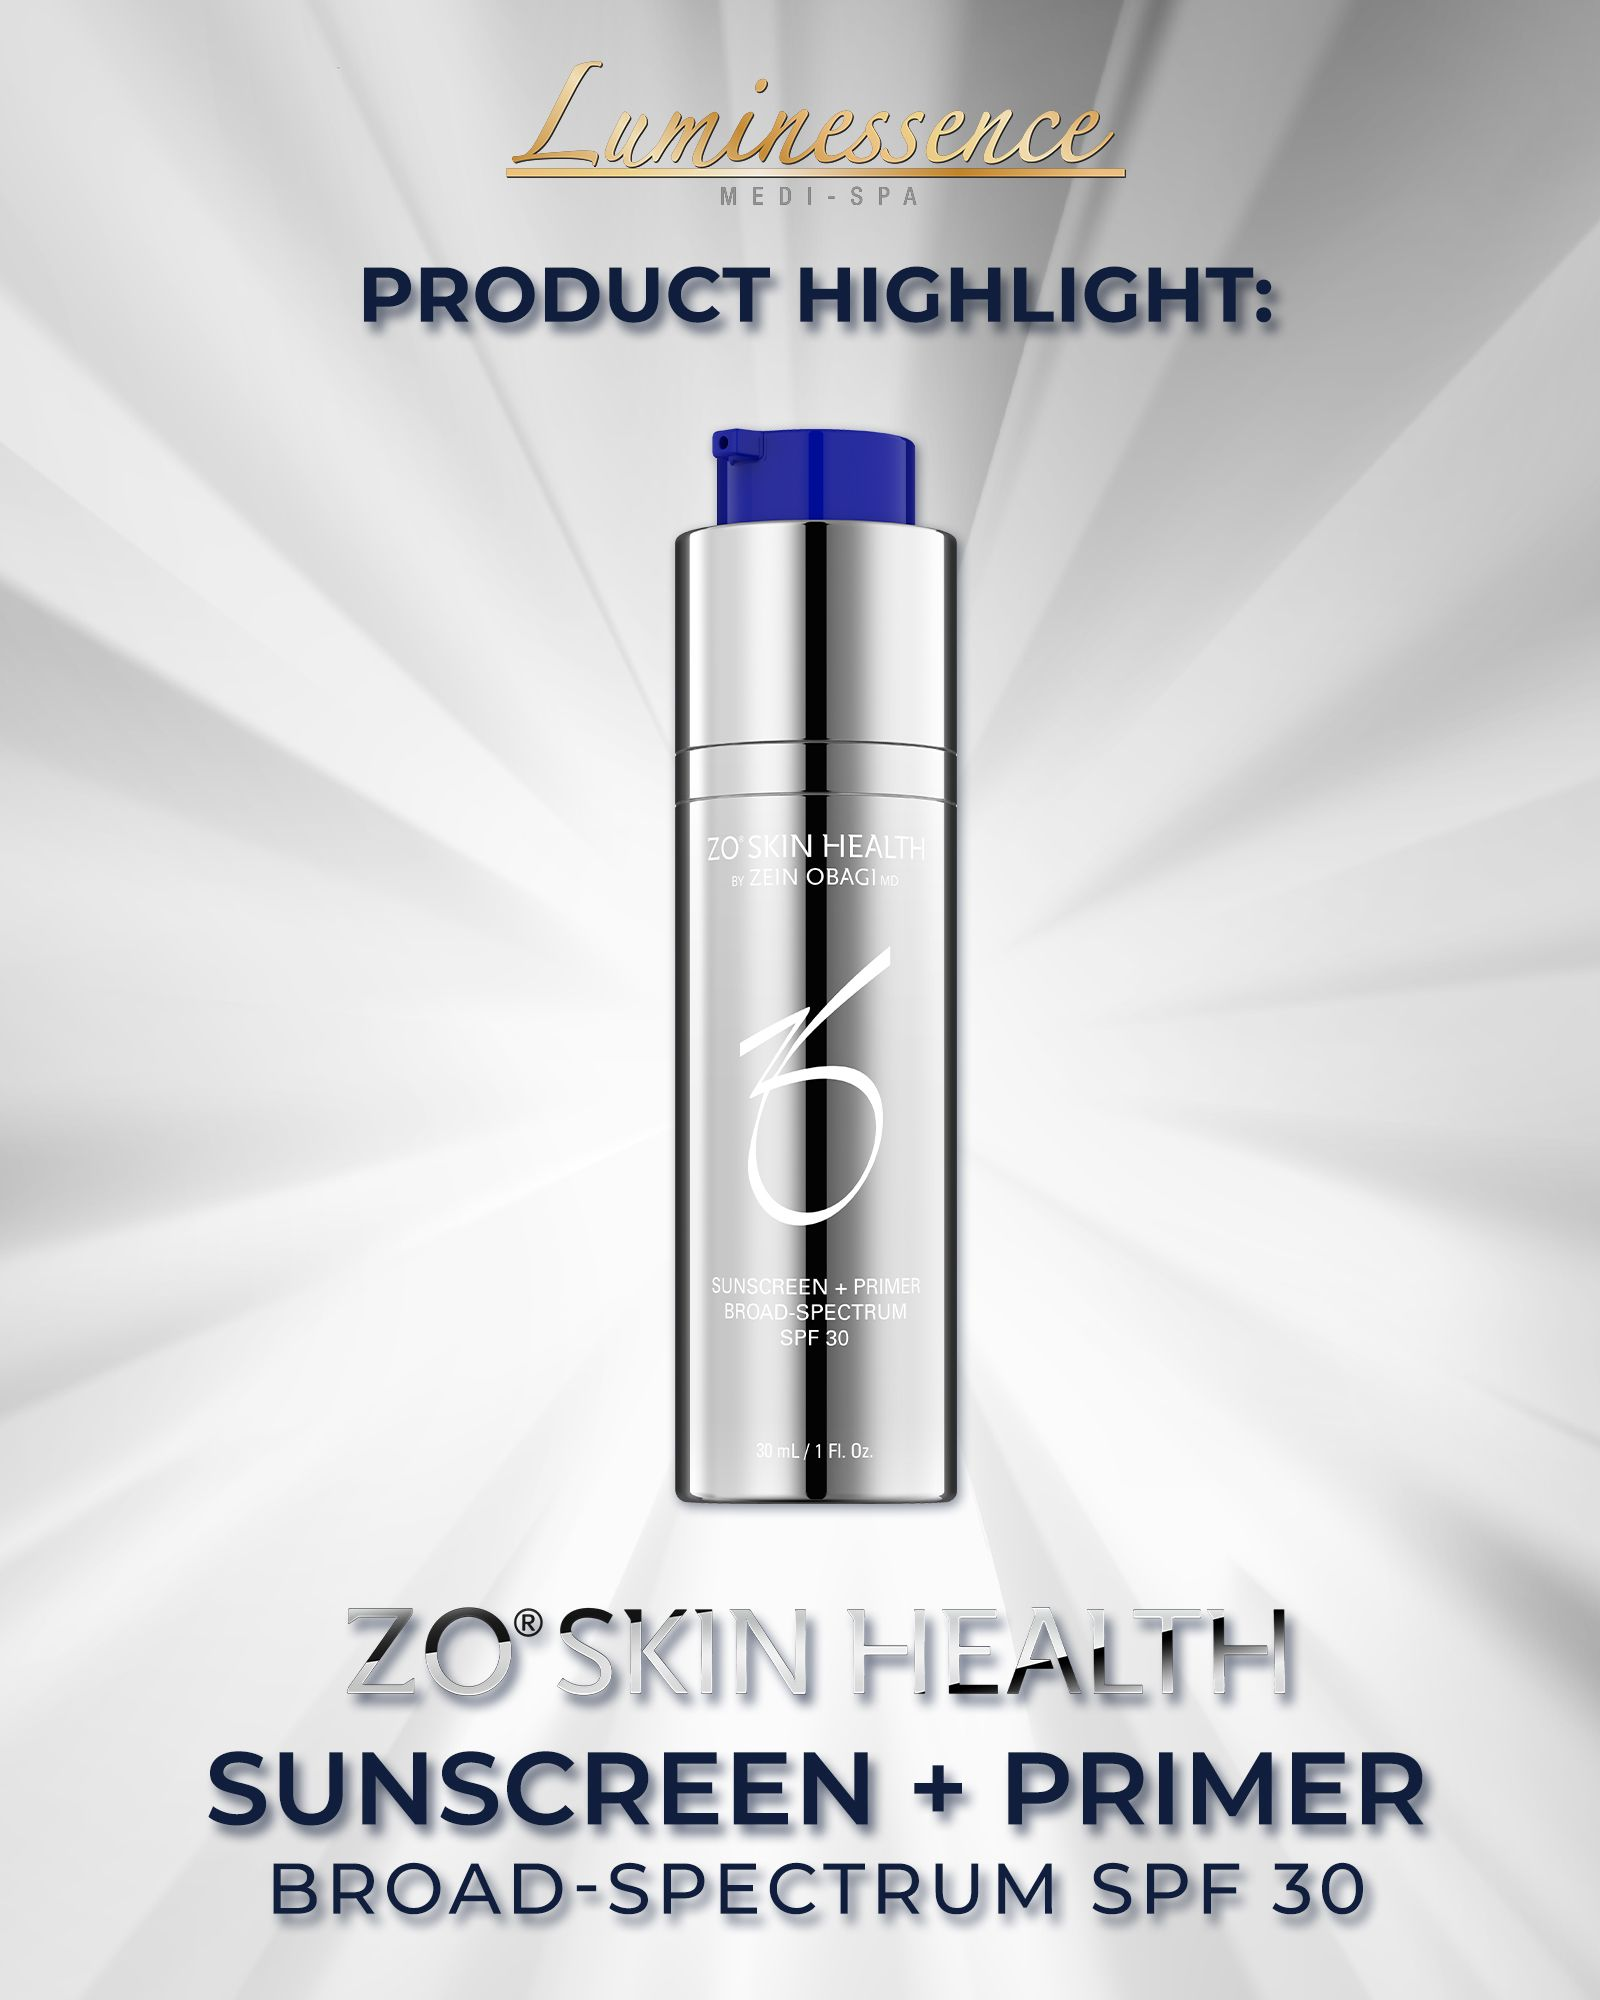 ZO® Skin Health's Sunscreen + Primer in 2020 Medispa